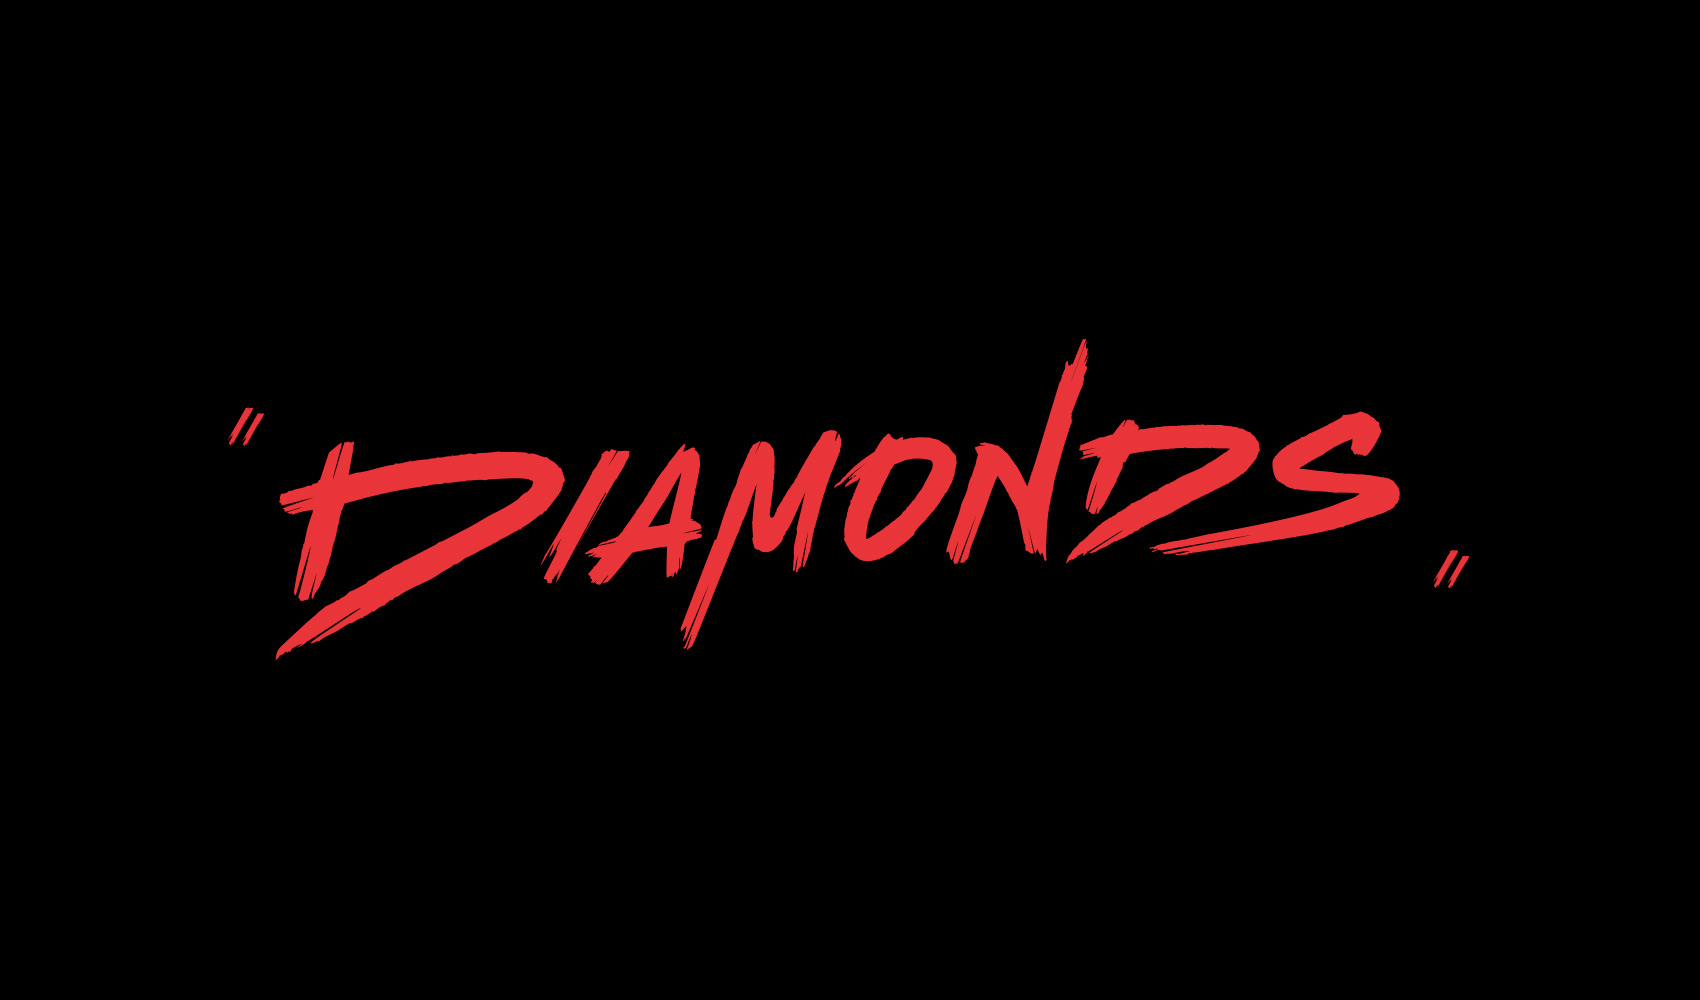 mb_diamonds_logo